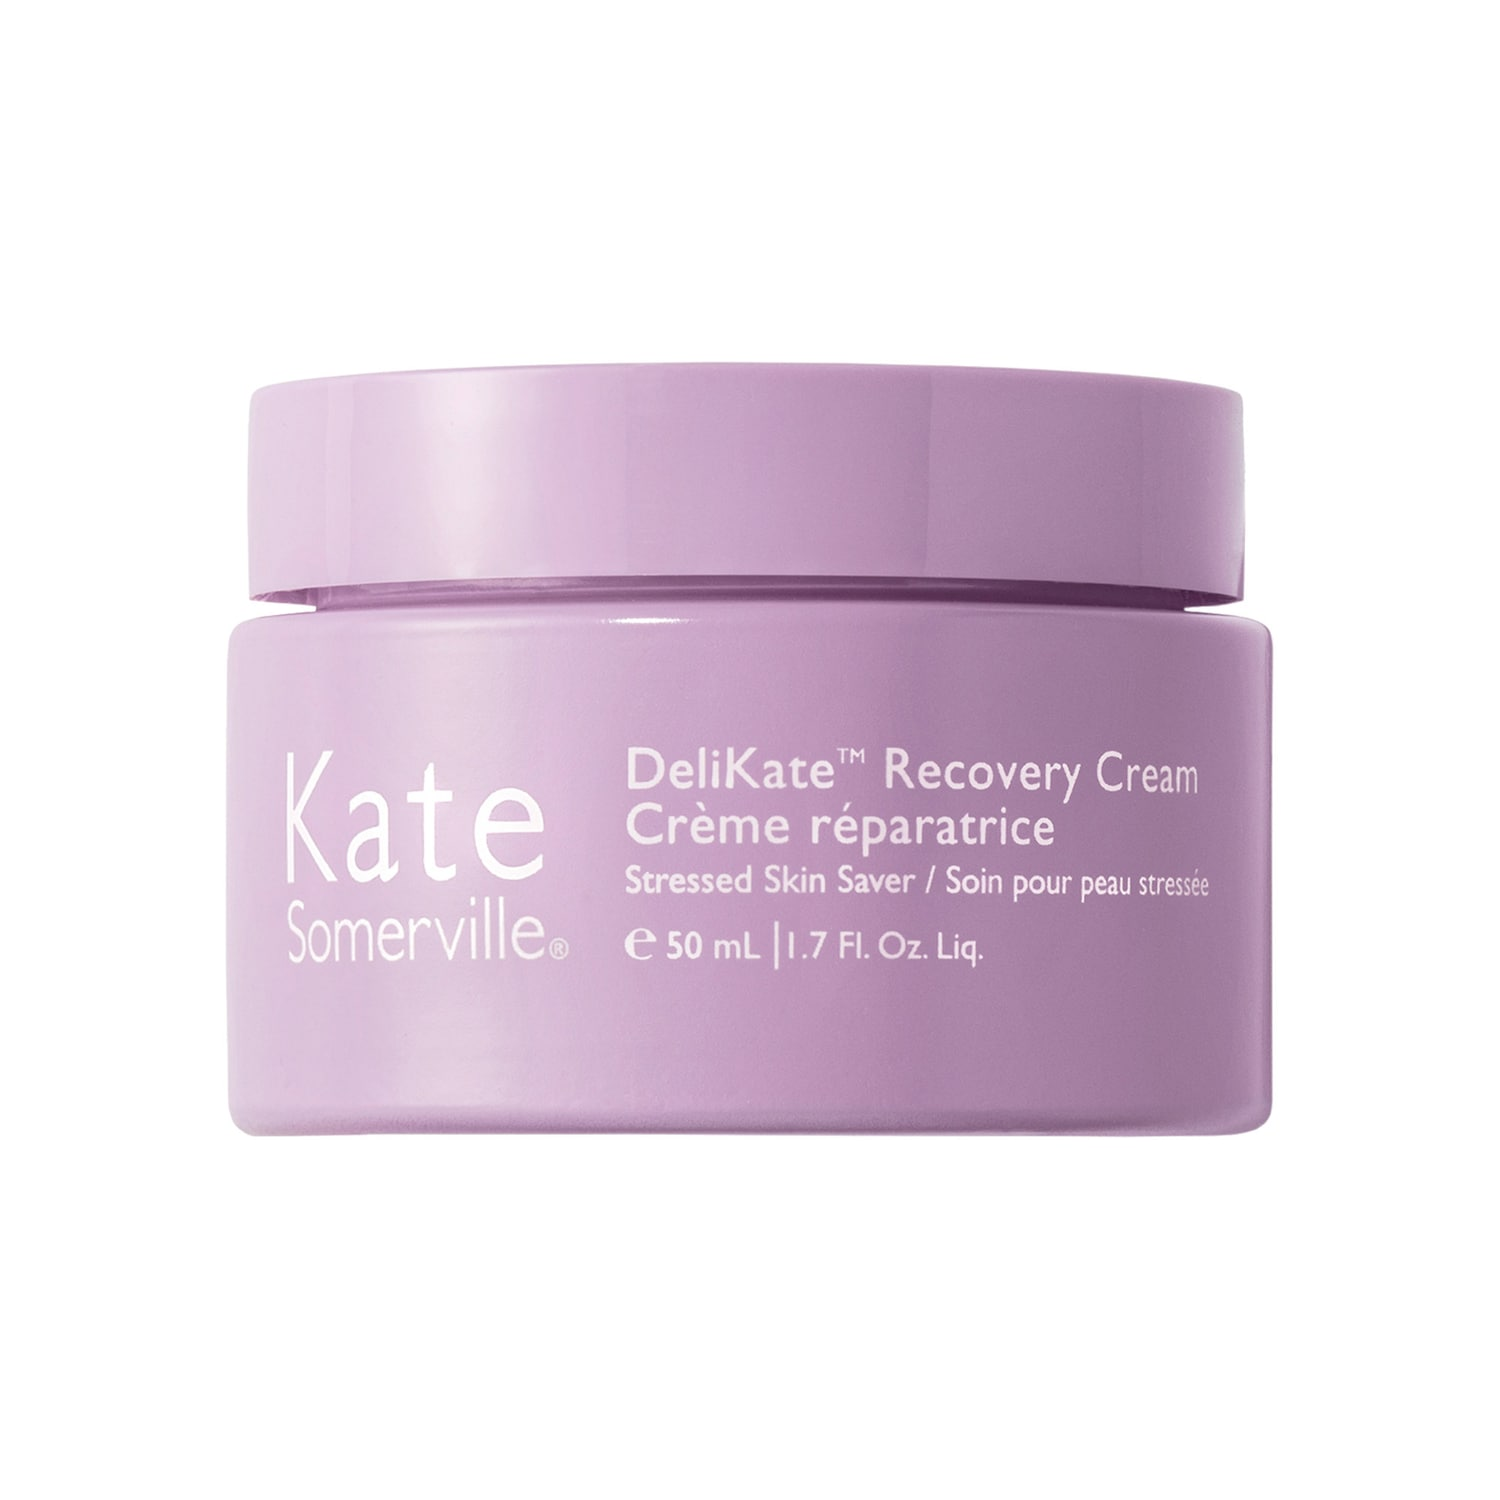 related product products/images/KateSomerville-DeliKateRecoveryCream.jpg